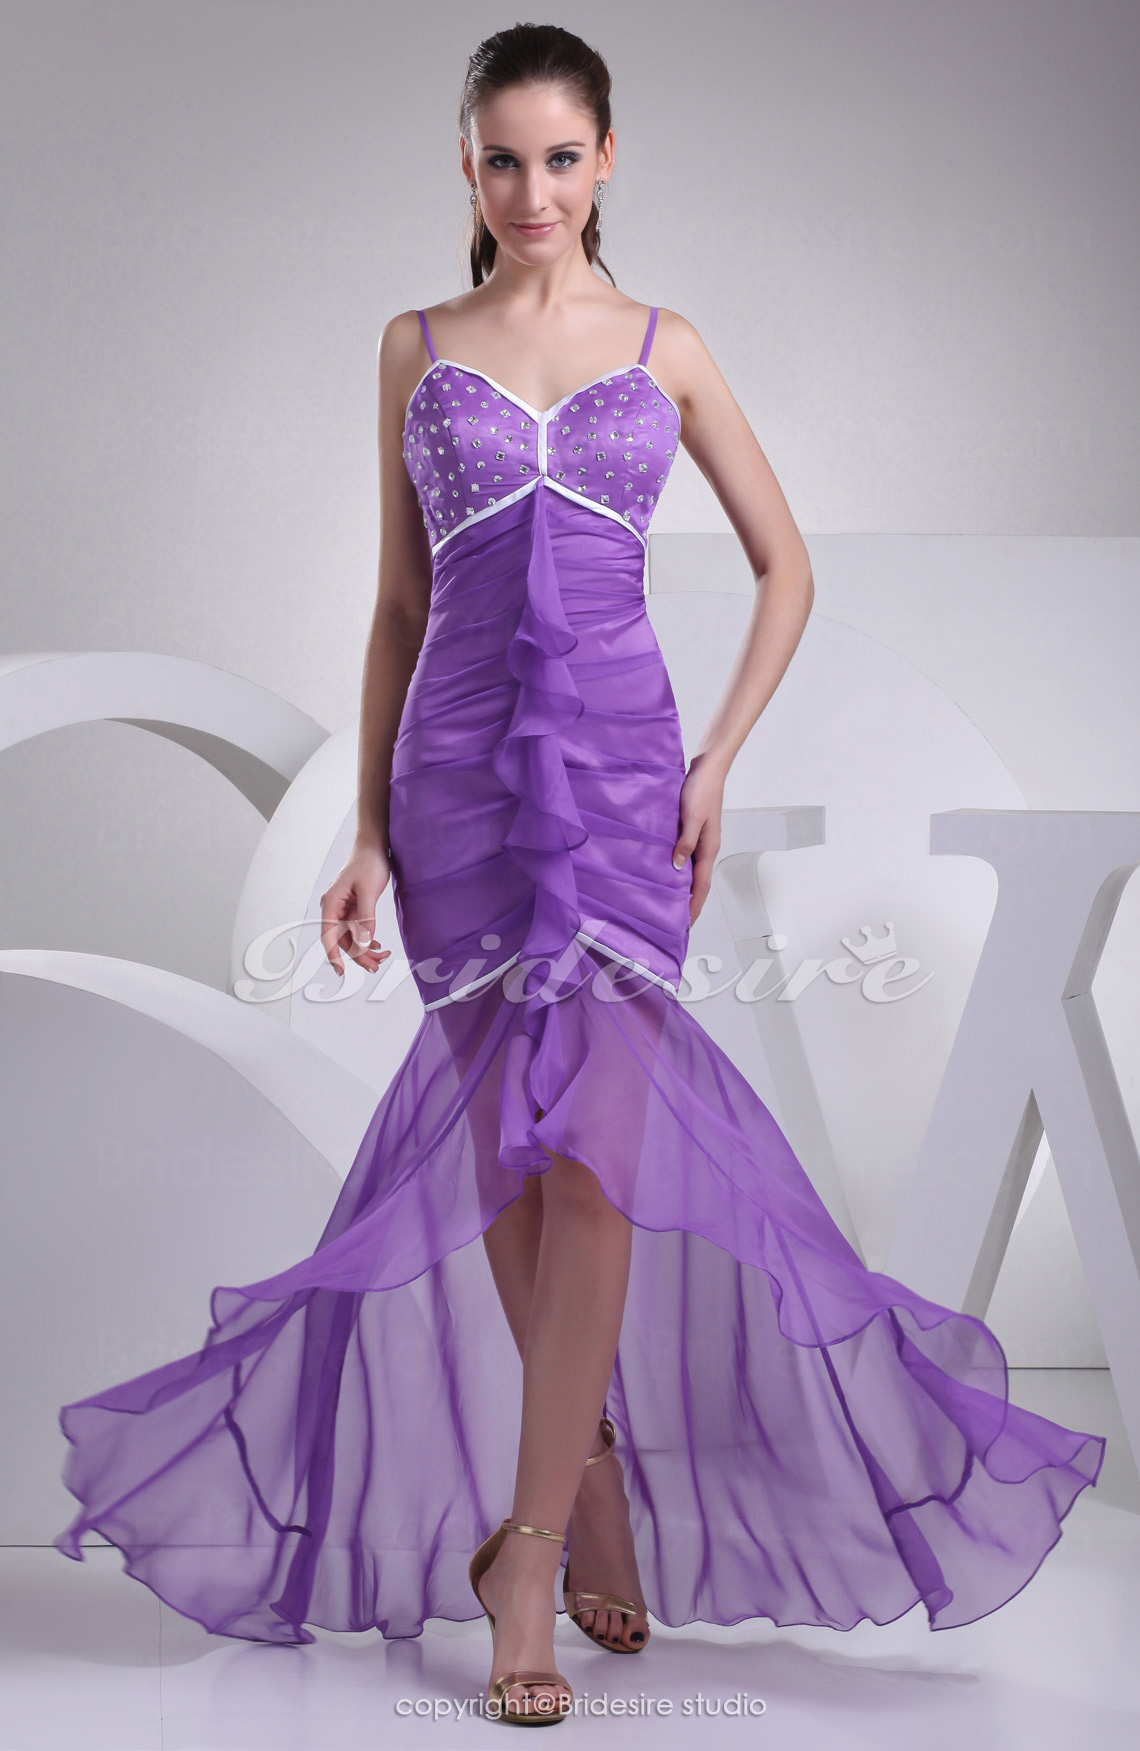 Trumpet/Mermaid Sweetheart Spaghetti Straps Asymmetrical Sleeveless Chiffon Satin Dress